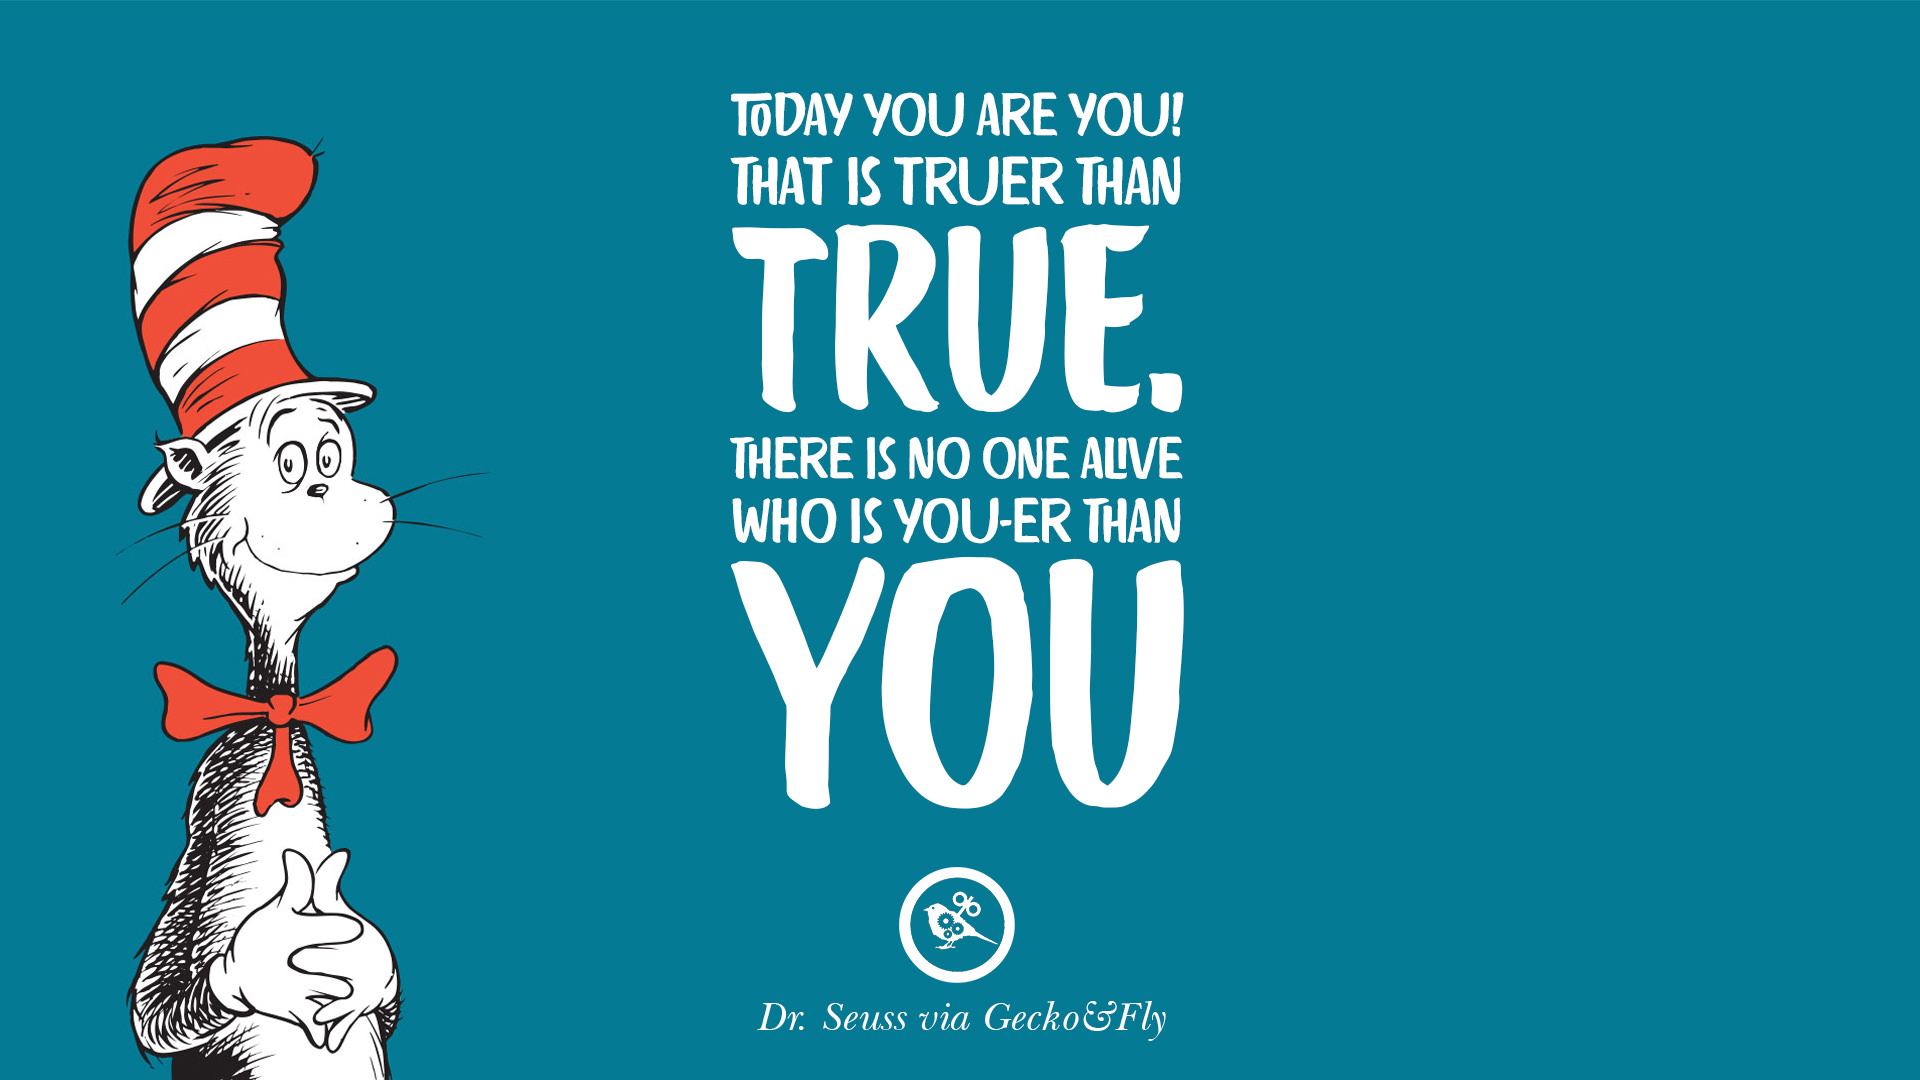 Quotes About Love Dr Seuss : ... than true. There is no one alive who is you-er than you. Dr Seuss